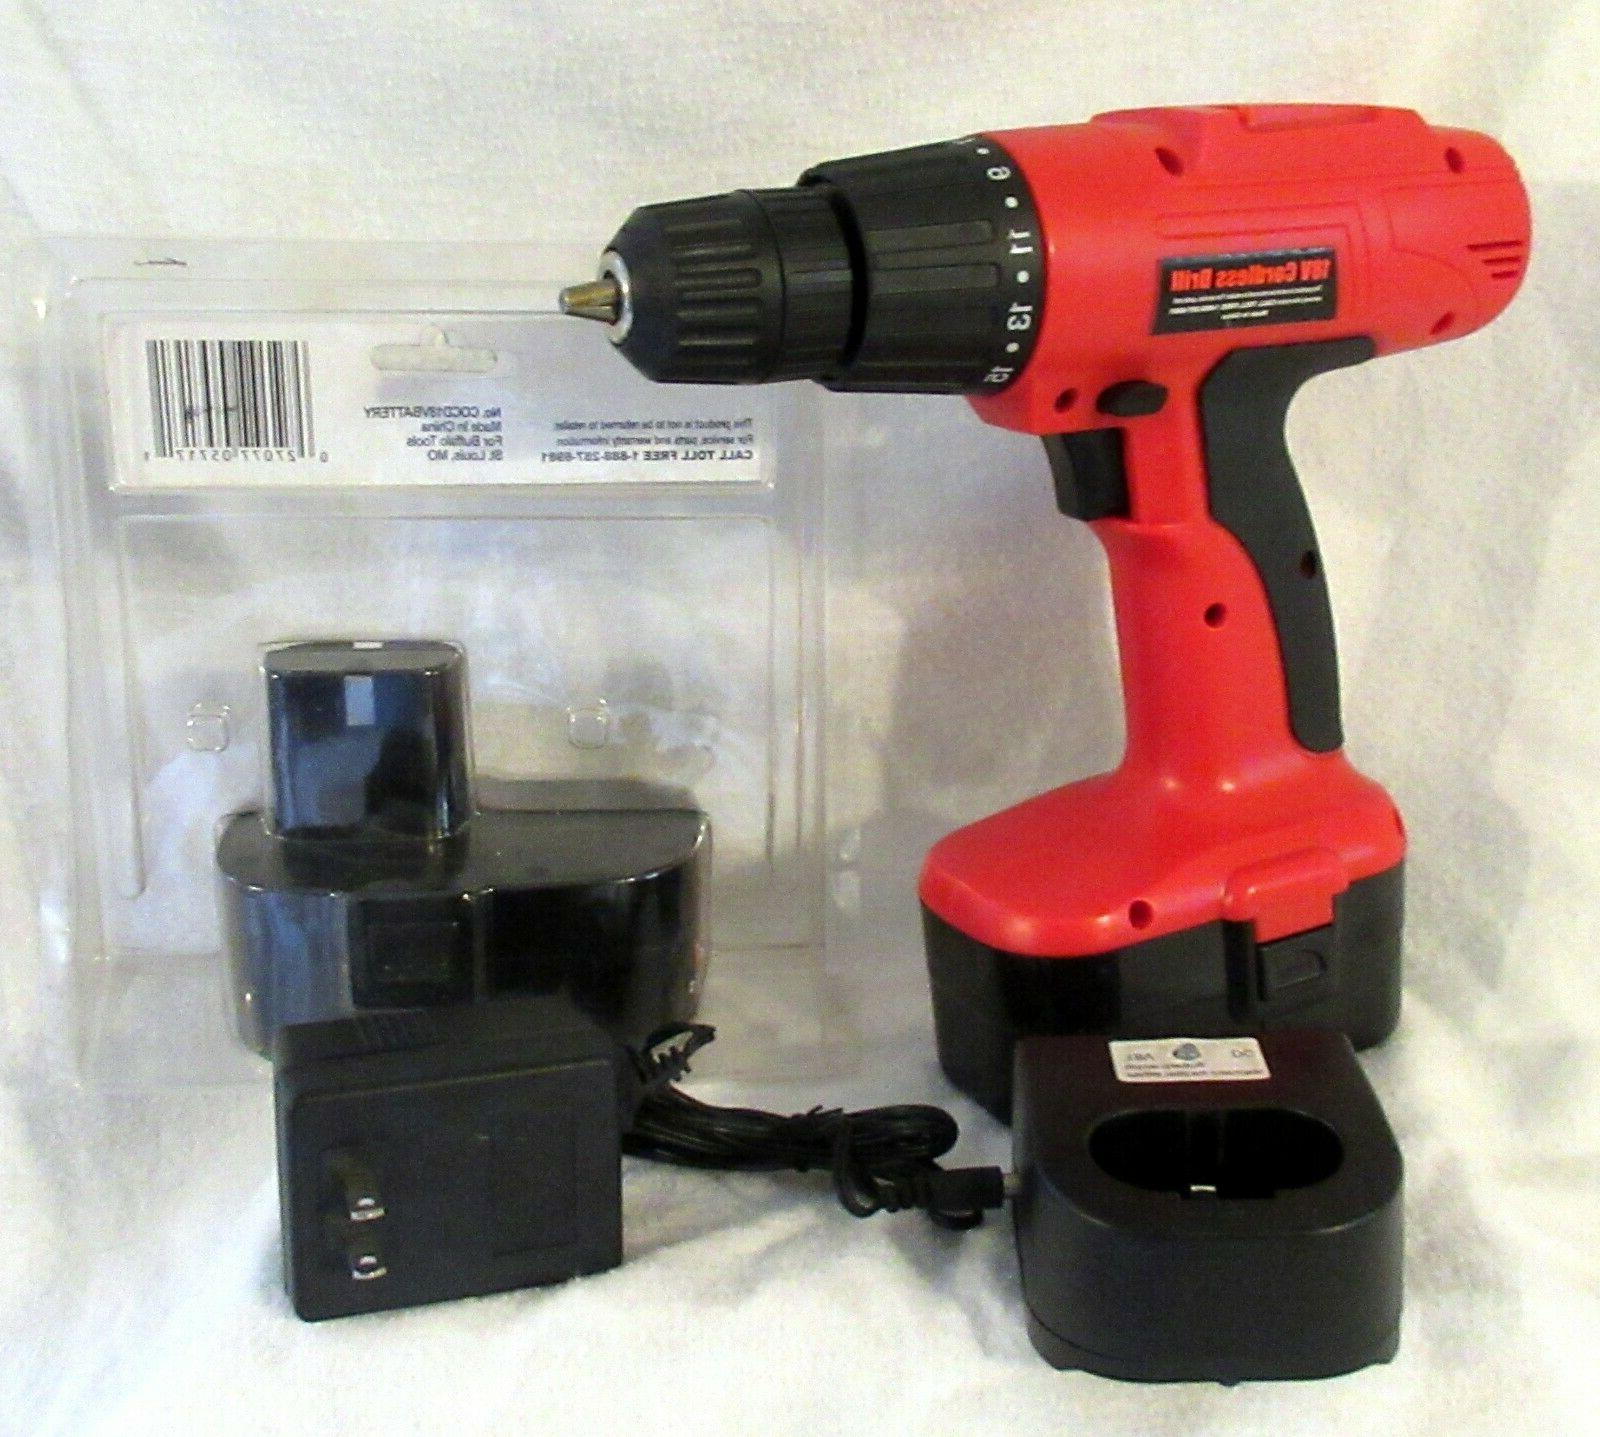 Buffalo 18V Cordless Drill, With 2 and Charger